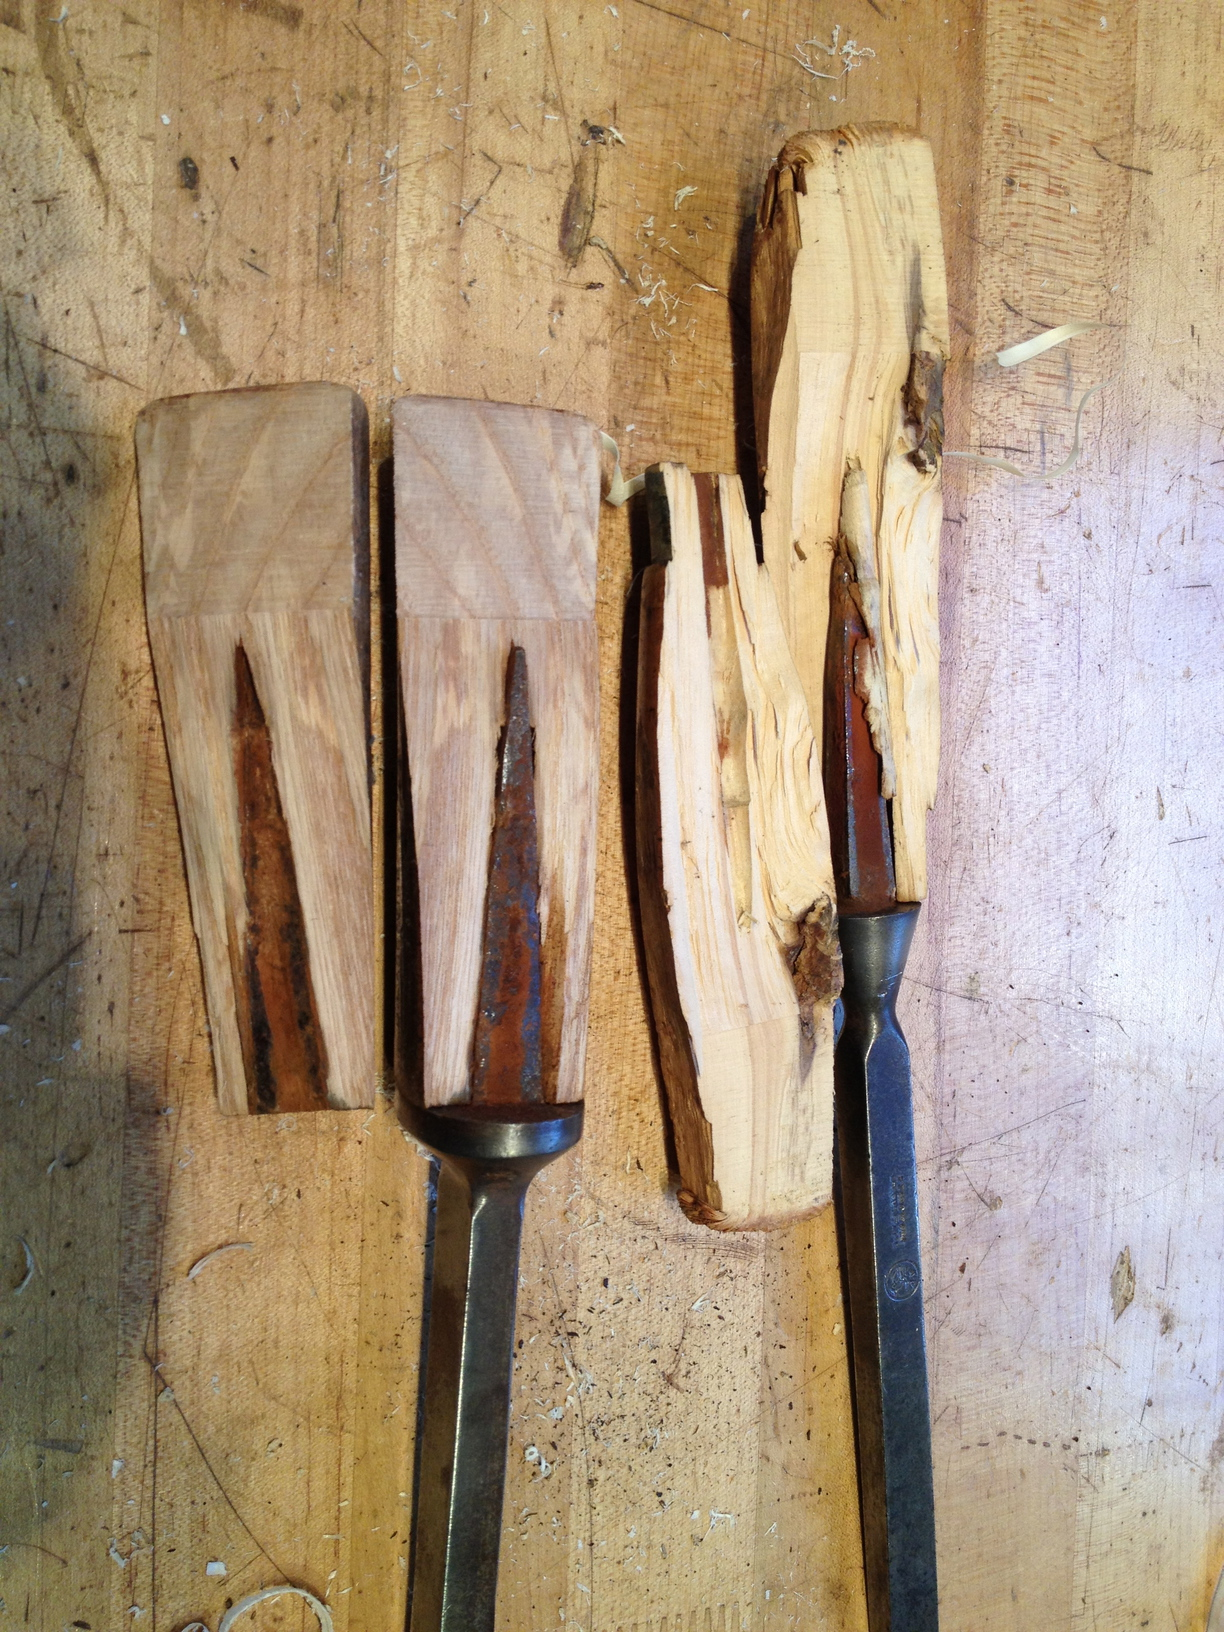 Two More Mortise Chisels